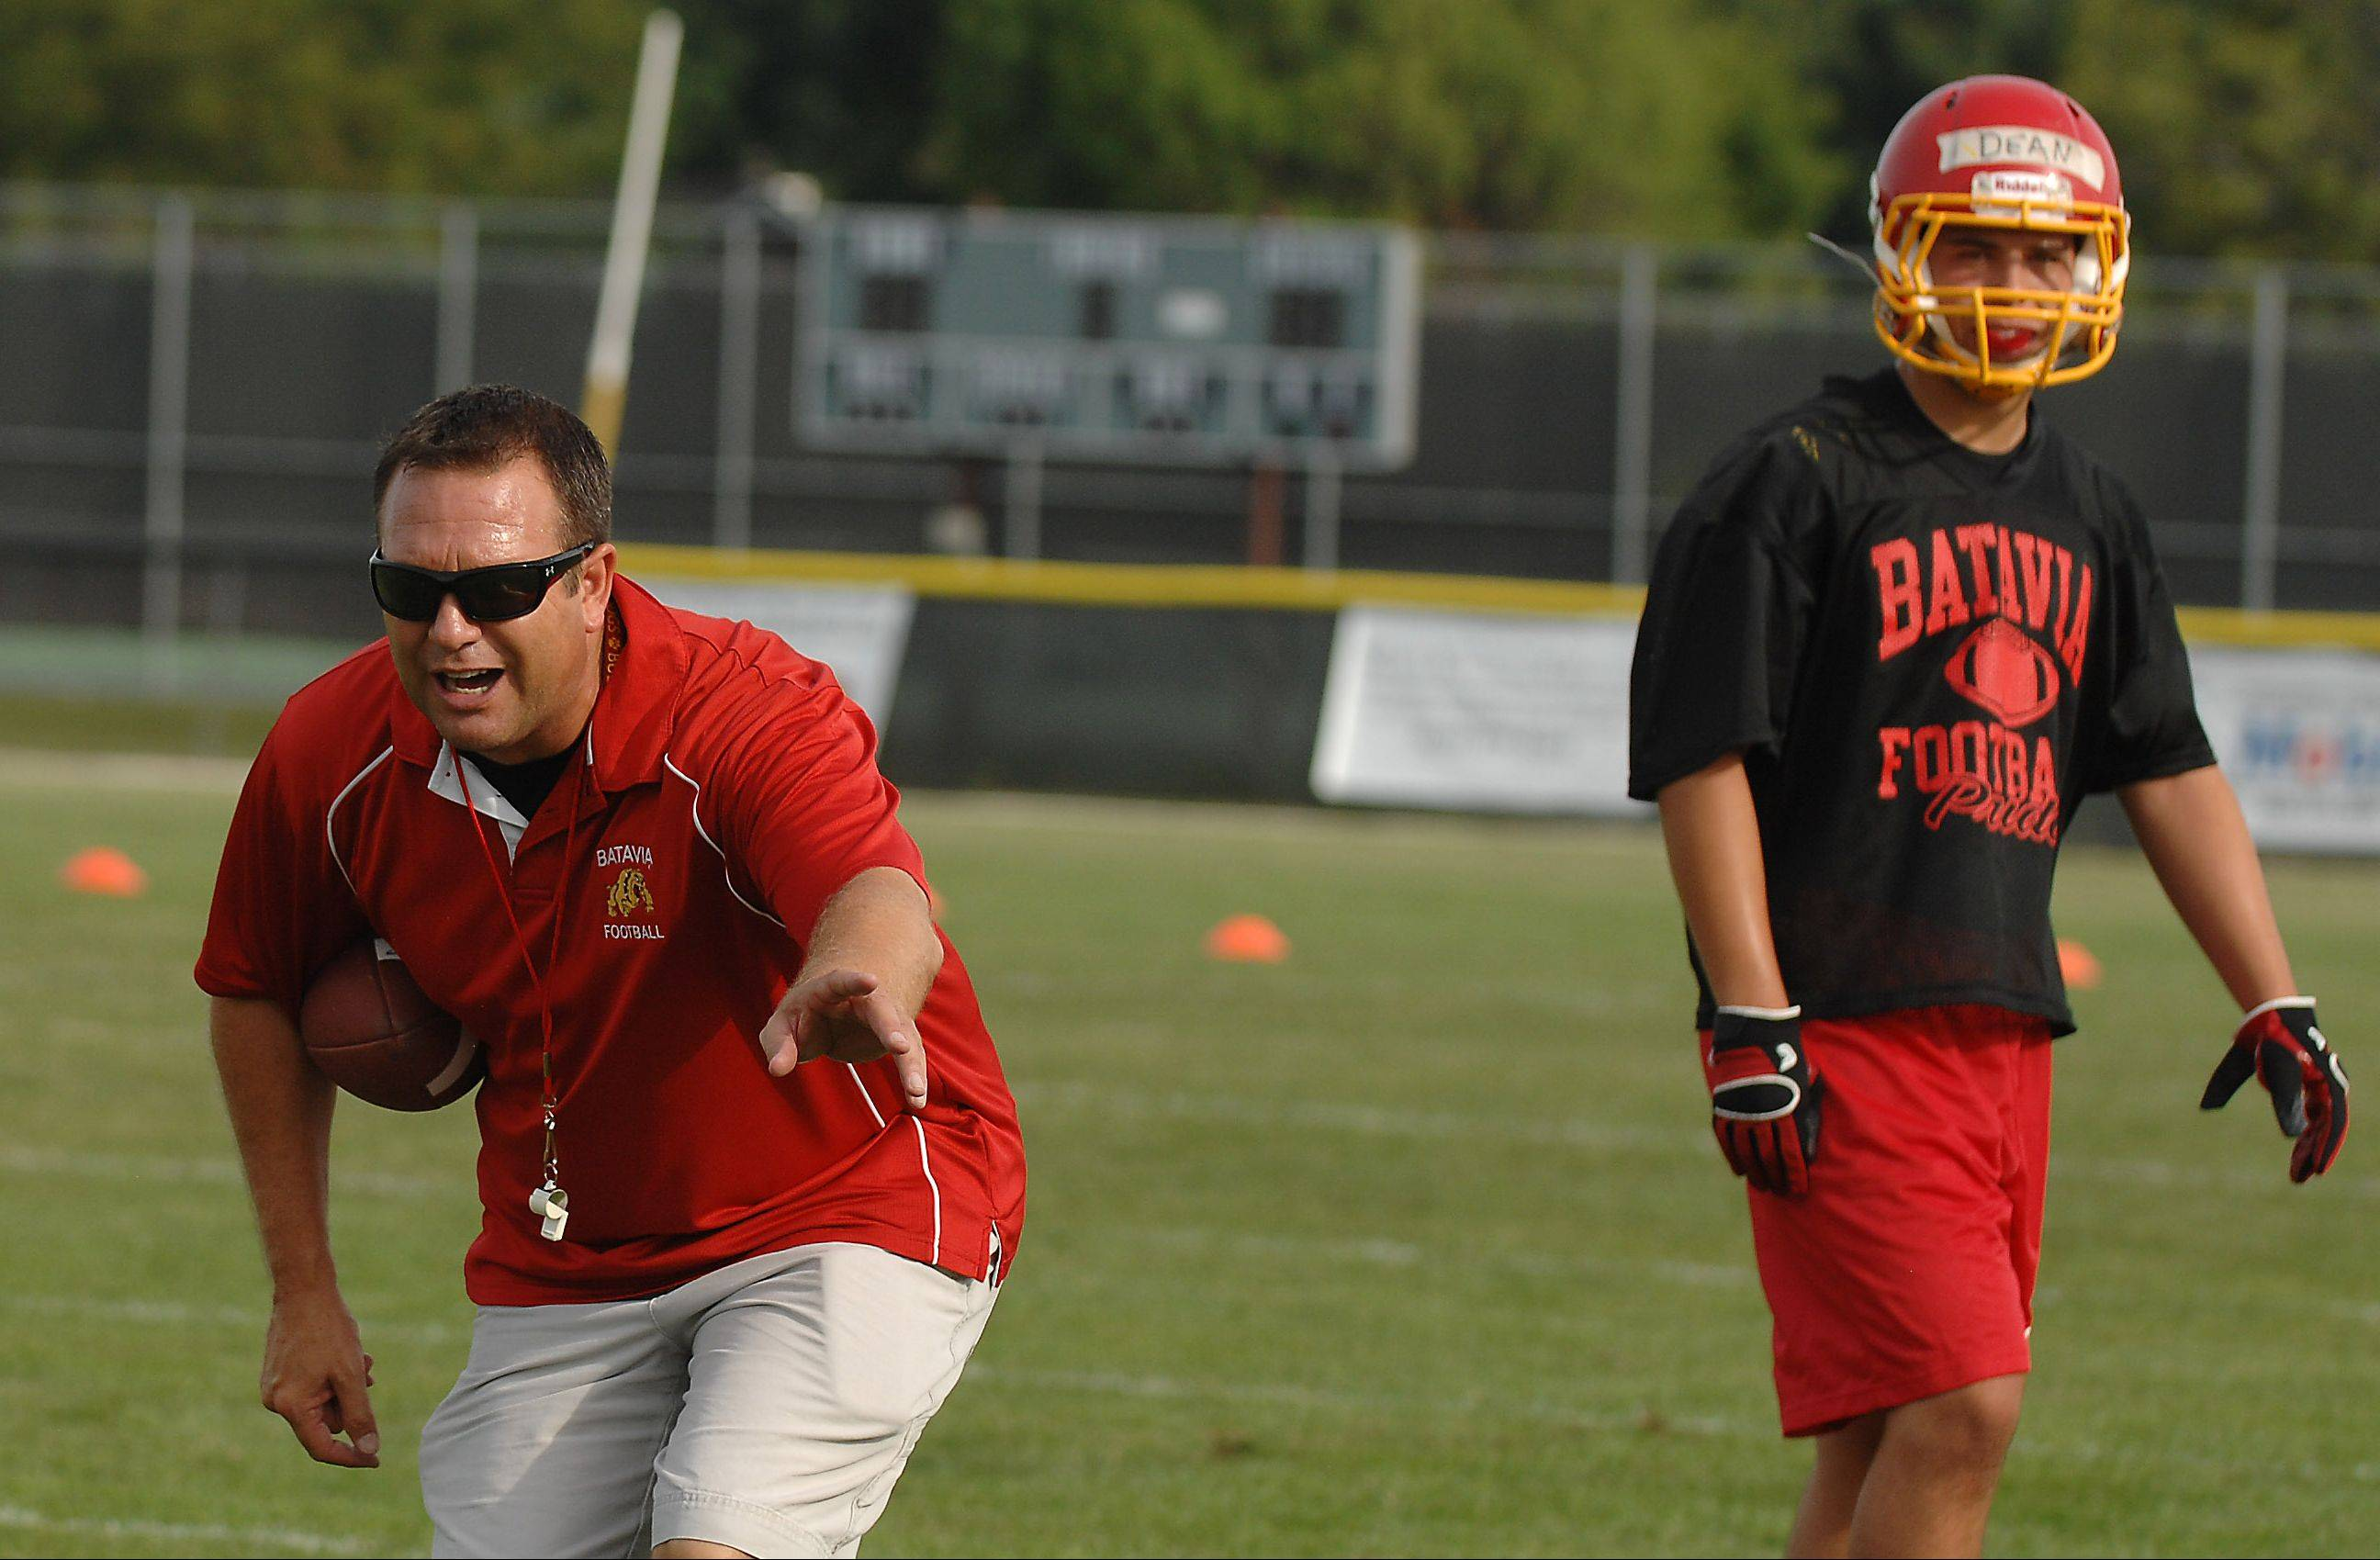 Head coach Dennis Piron directs his team during Batavia's first day of football practice.